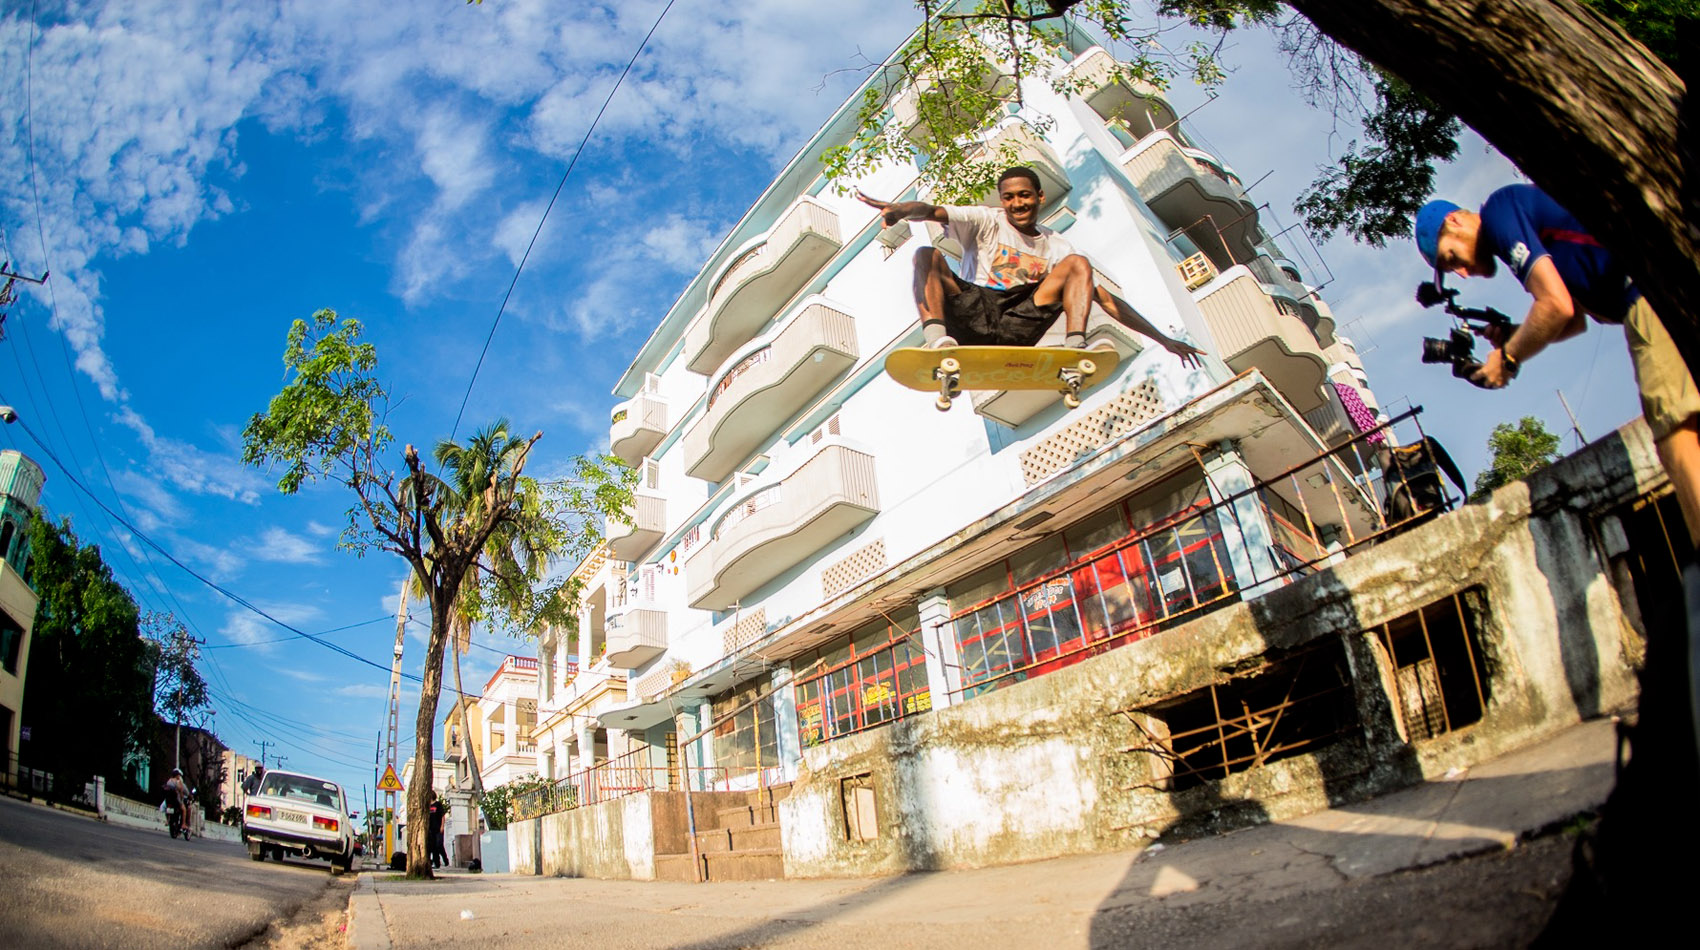 Cuba Skate: Pushing Wood in Havana